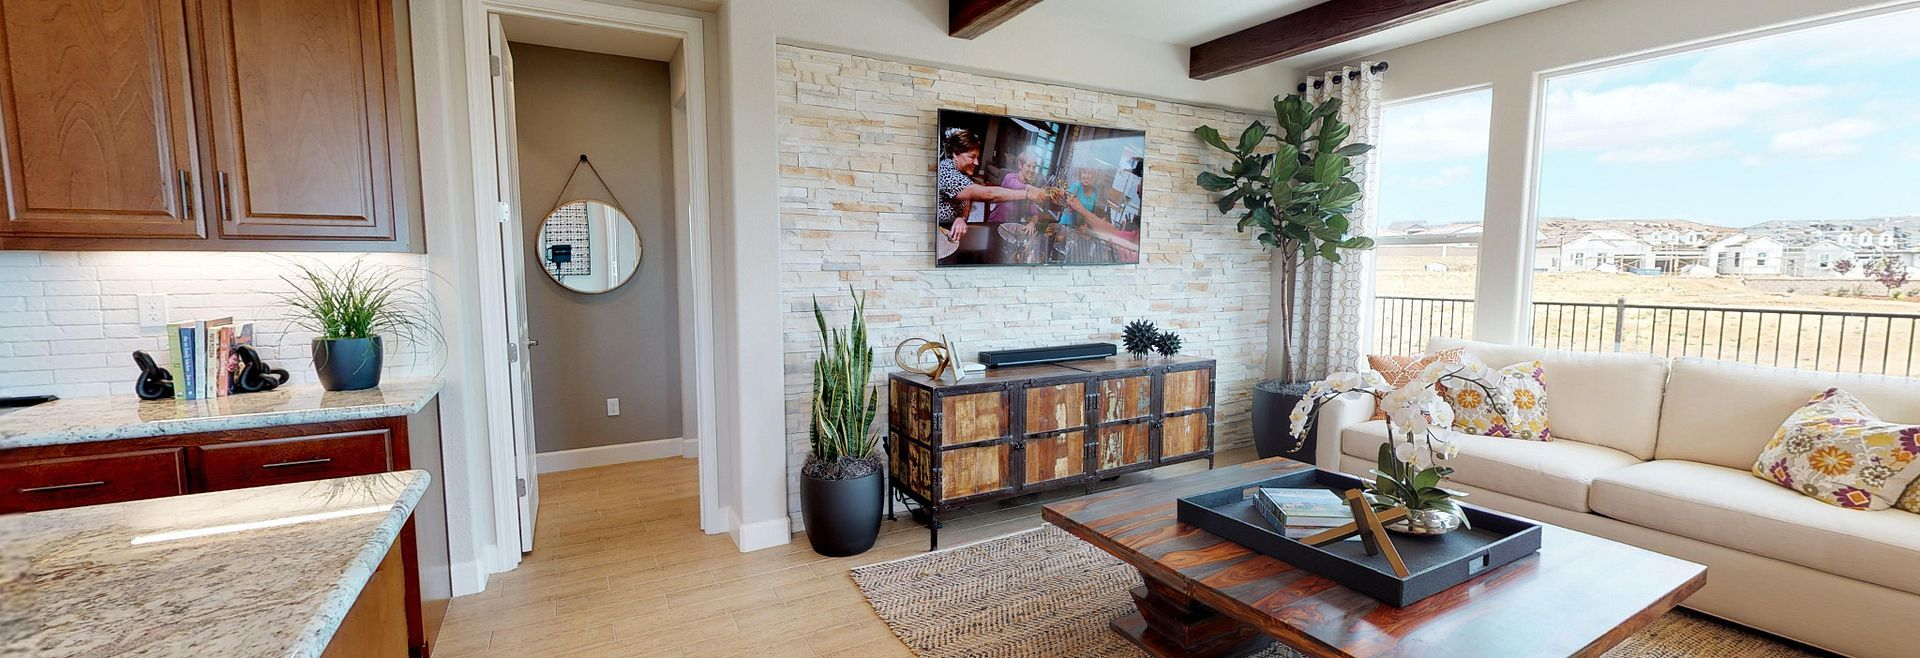 Living Area featured in the Muros By Shea Homes - Trilogy in Oakland-Alameda, CA